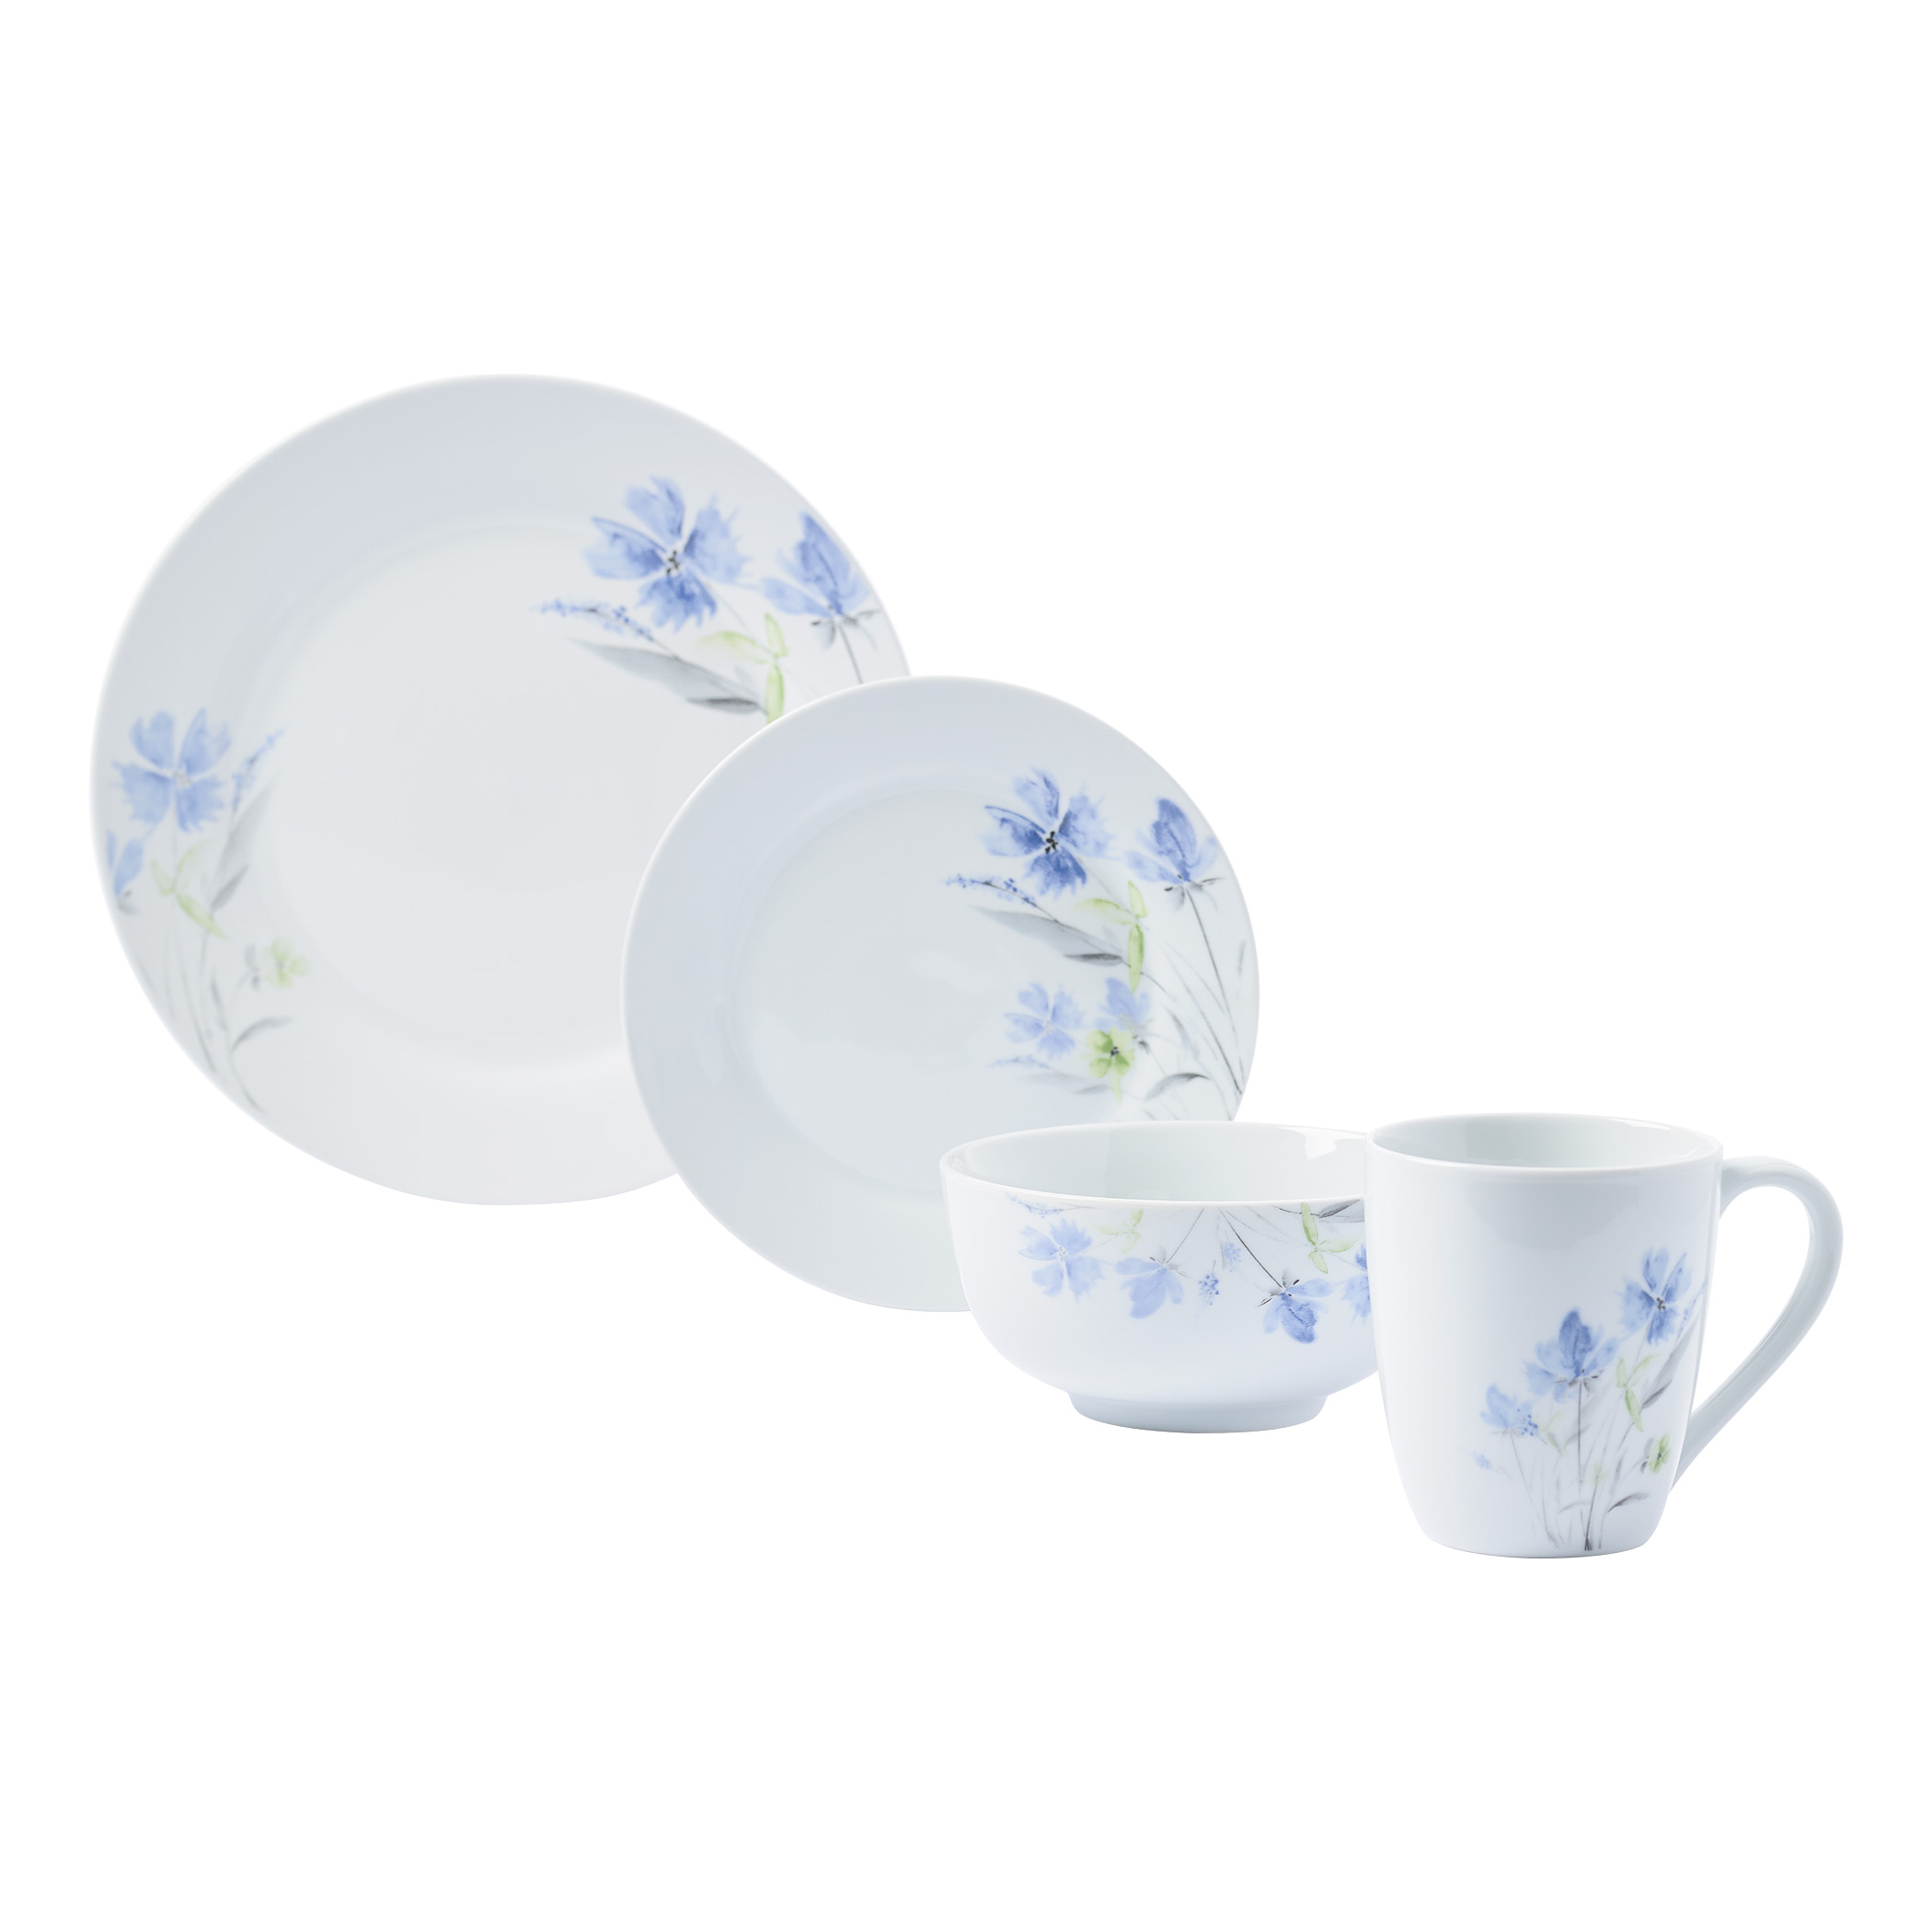 TTU-83700-EC-16 Piece Porcelain Dinnerware Set by Tabletops Gallery ...  sc 1 st  Tabletops Unlimited : tabletops dinnerware sets - pezcame.com